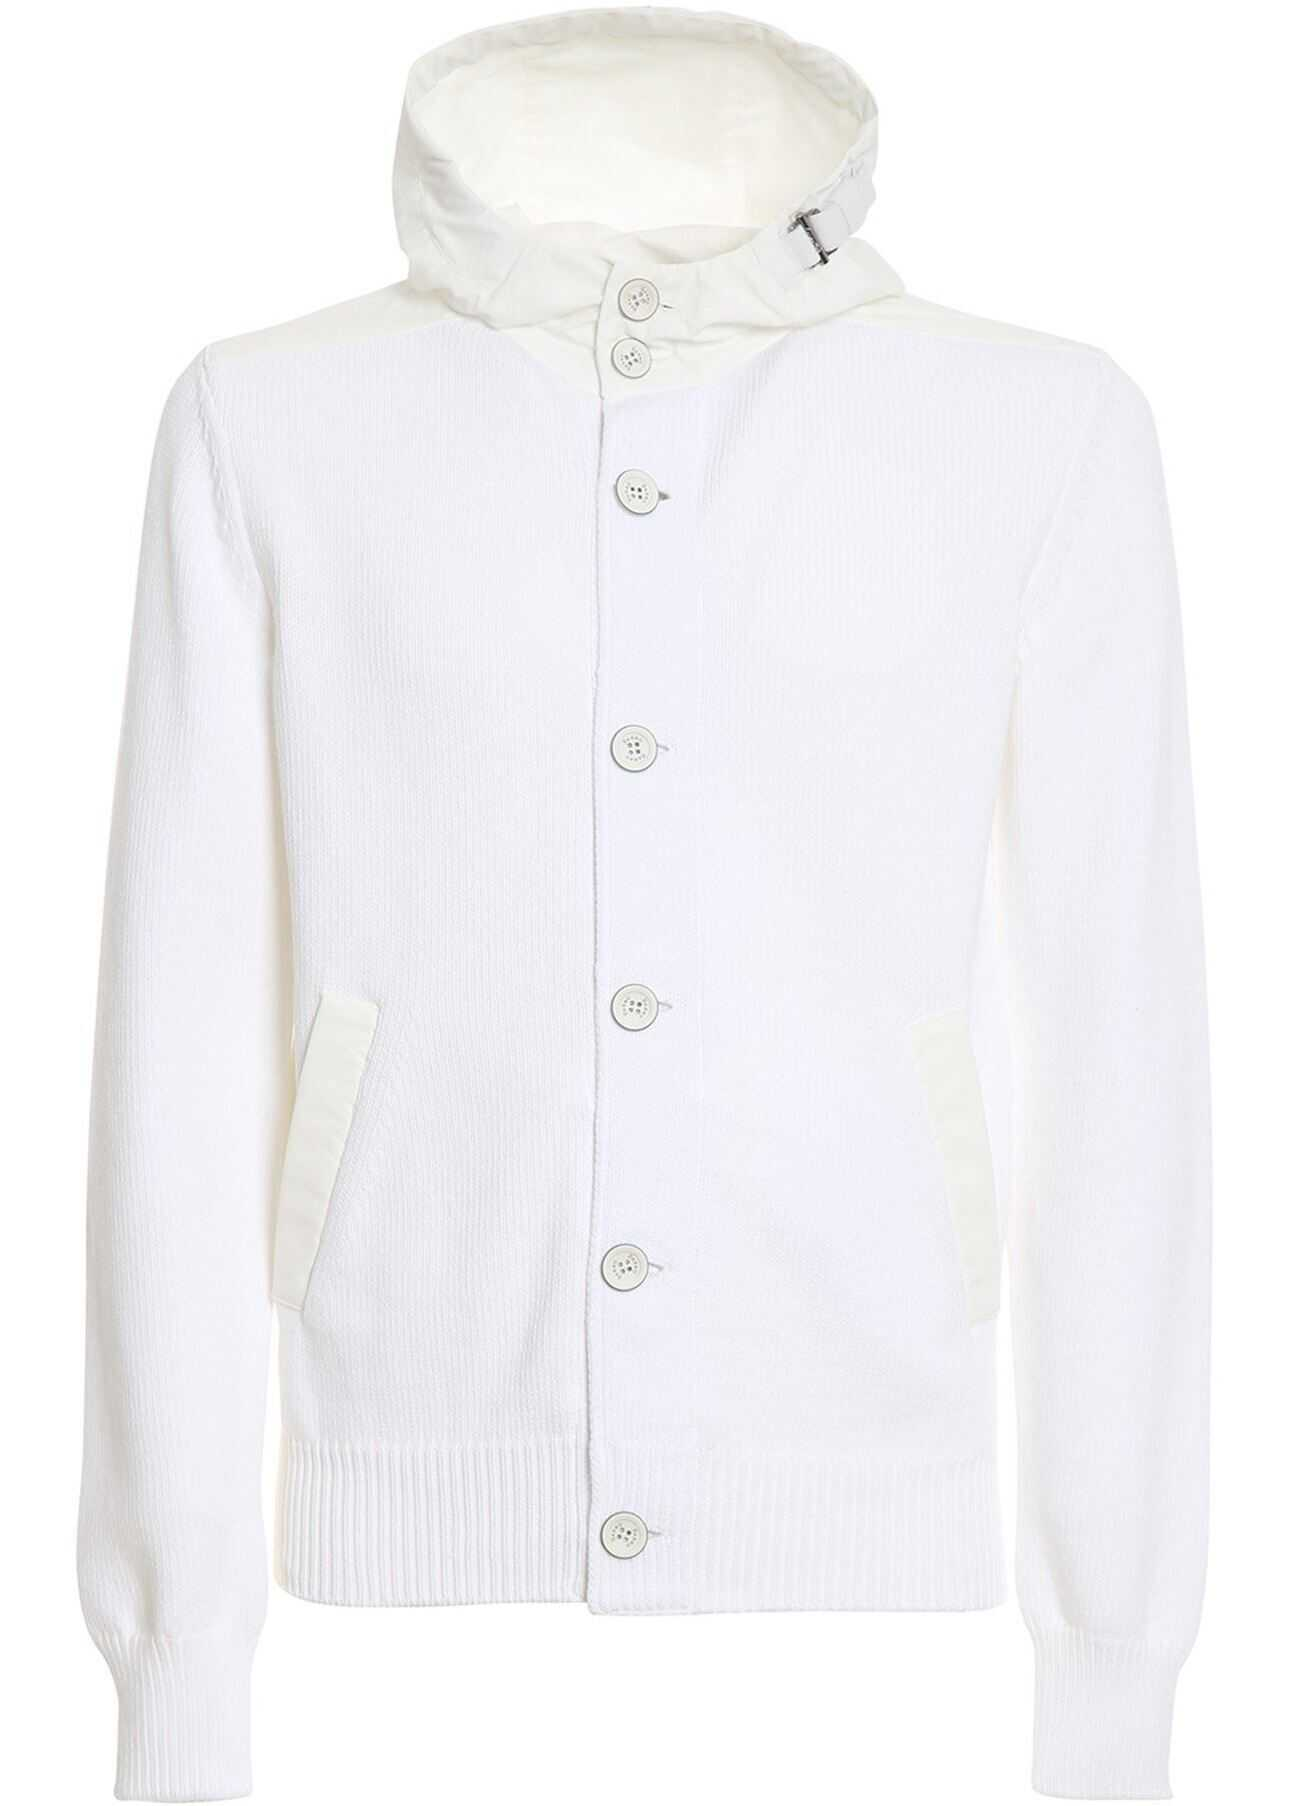 Herno Knitted Jacket In White White imagine